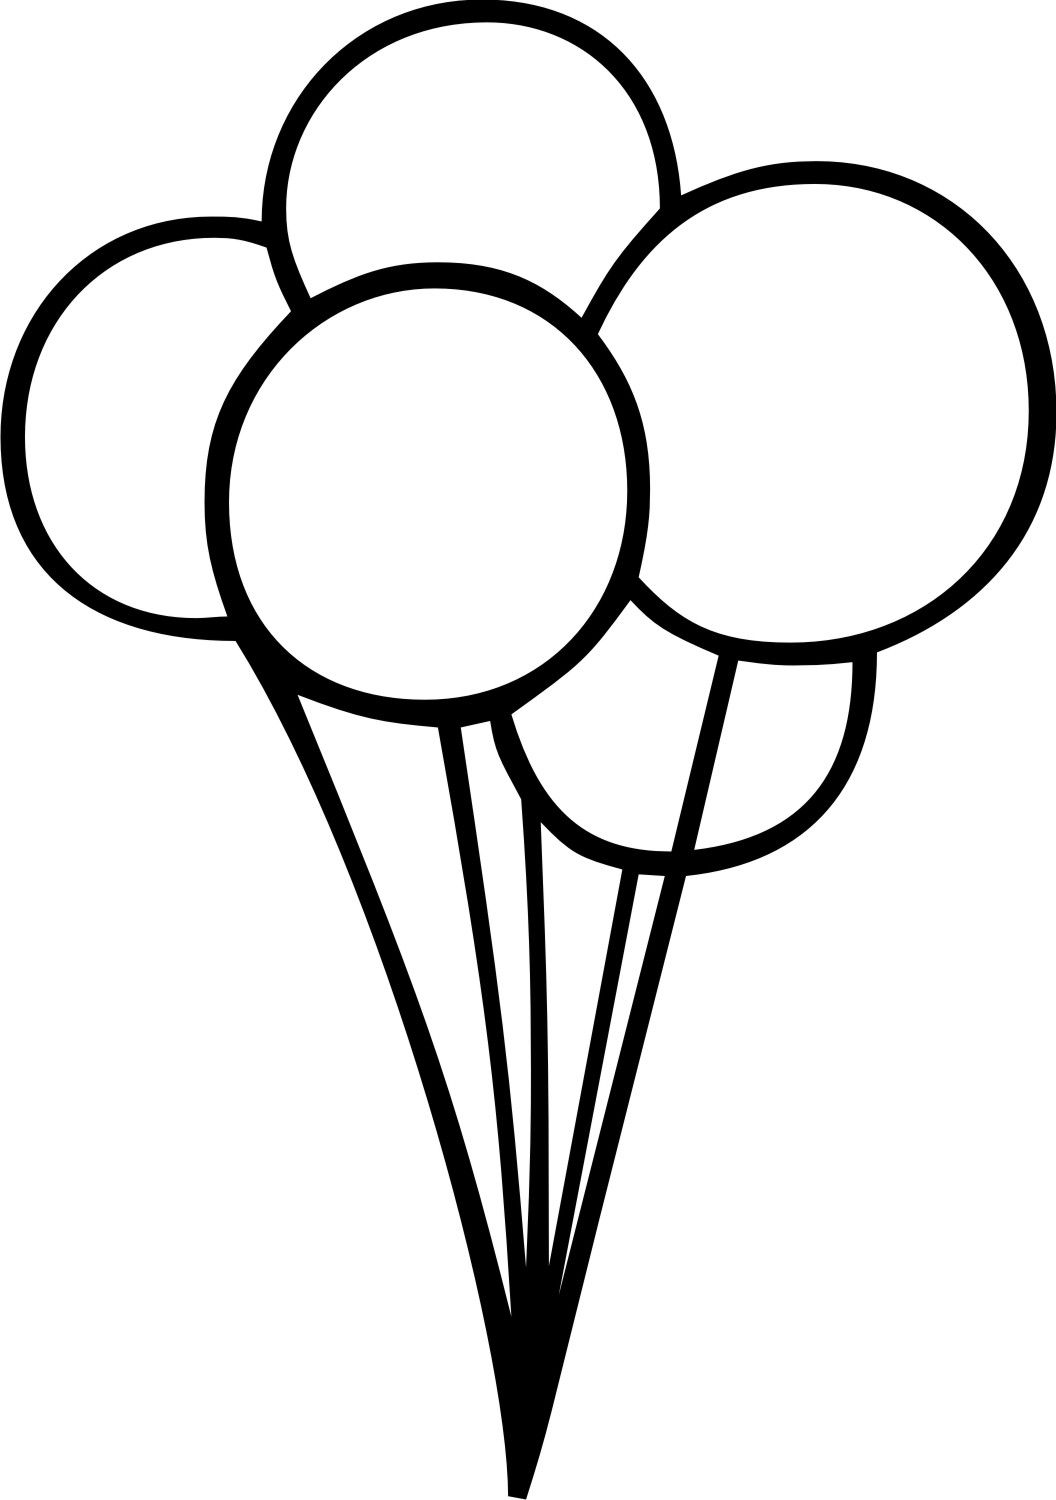 Balloons black and white clipart png royalty free library birthday balloons clip art black and white 2 | Clip Art | Balloons ... png royalty free library